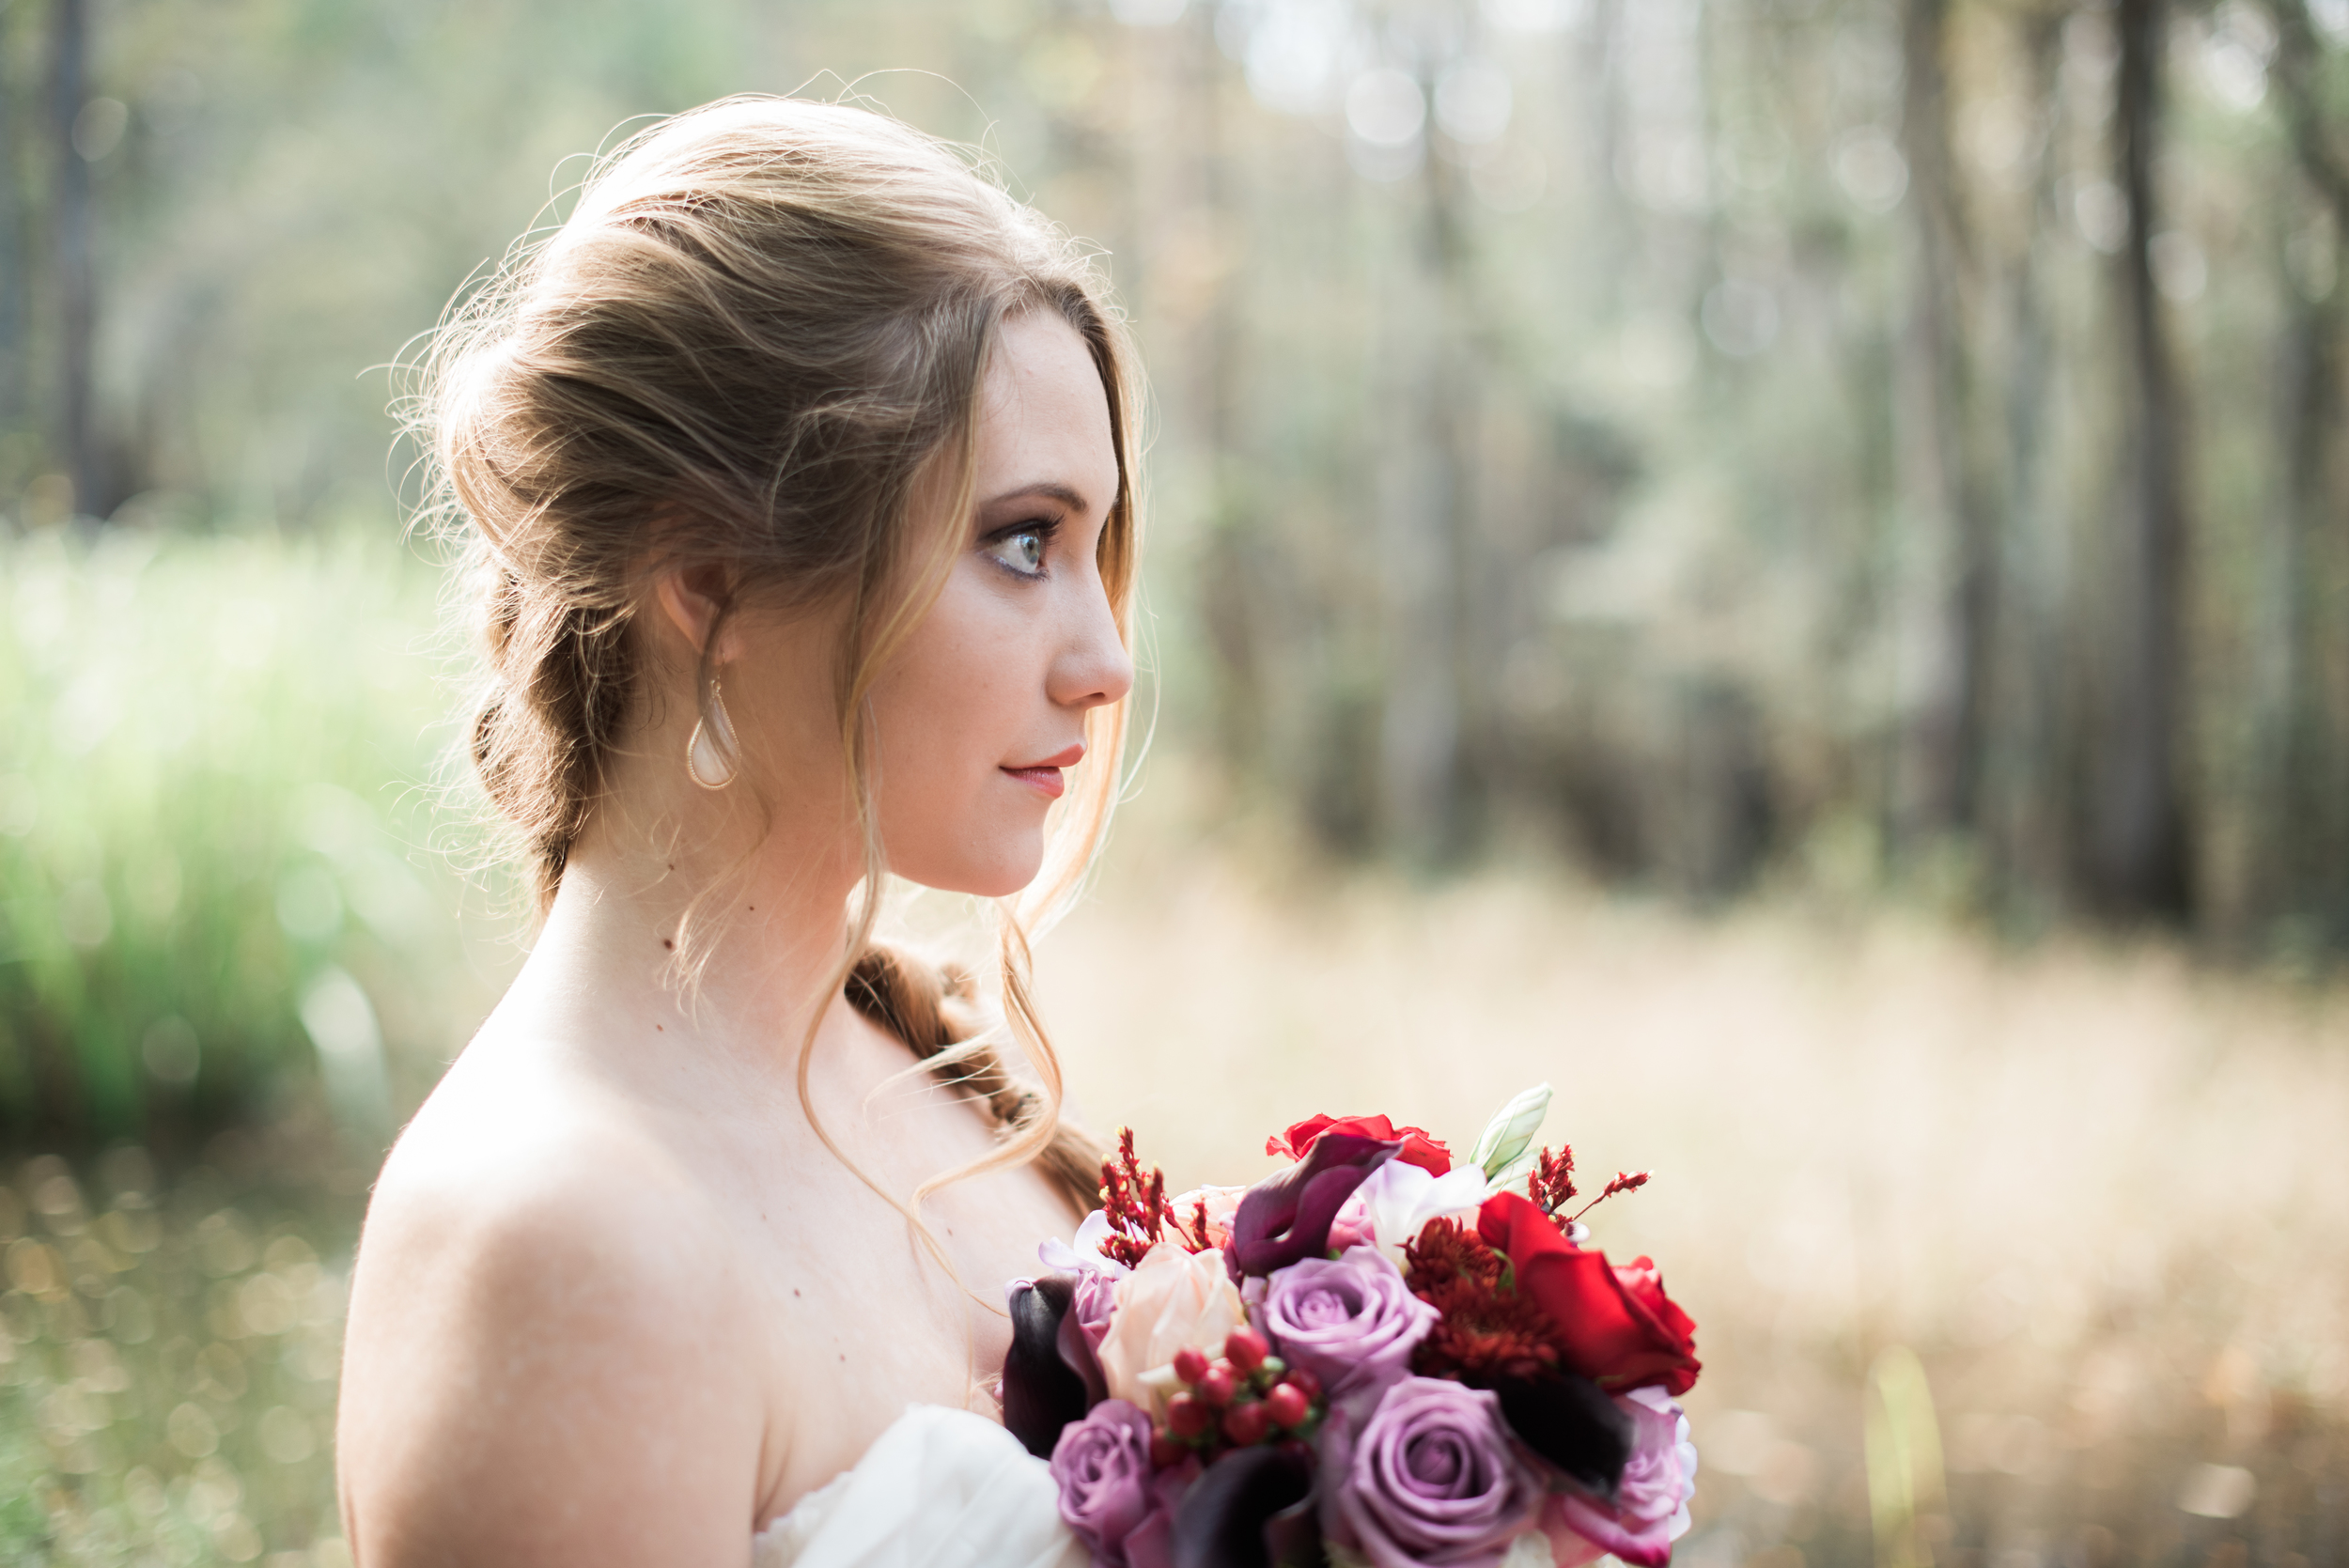 5-D-Photography-lafayette-sarah-seven-off-the-shoulder-wedding-dress-Gardenias-hilton-head- Ogeechee-Canal-Trail-ivory-and-beau-bridal-boutique-savannah-wedding-dresses-savannah-bridal-boutique-savannah-weddings-hilton-head-bridal-10.jpg